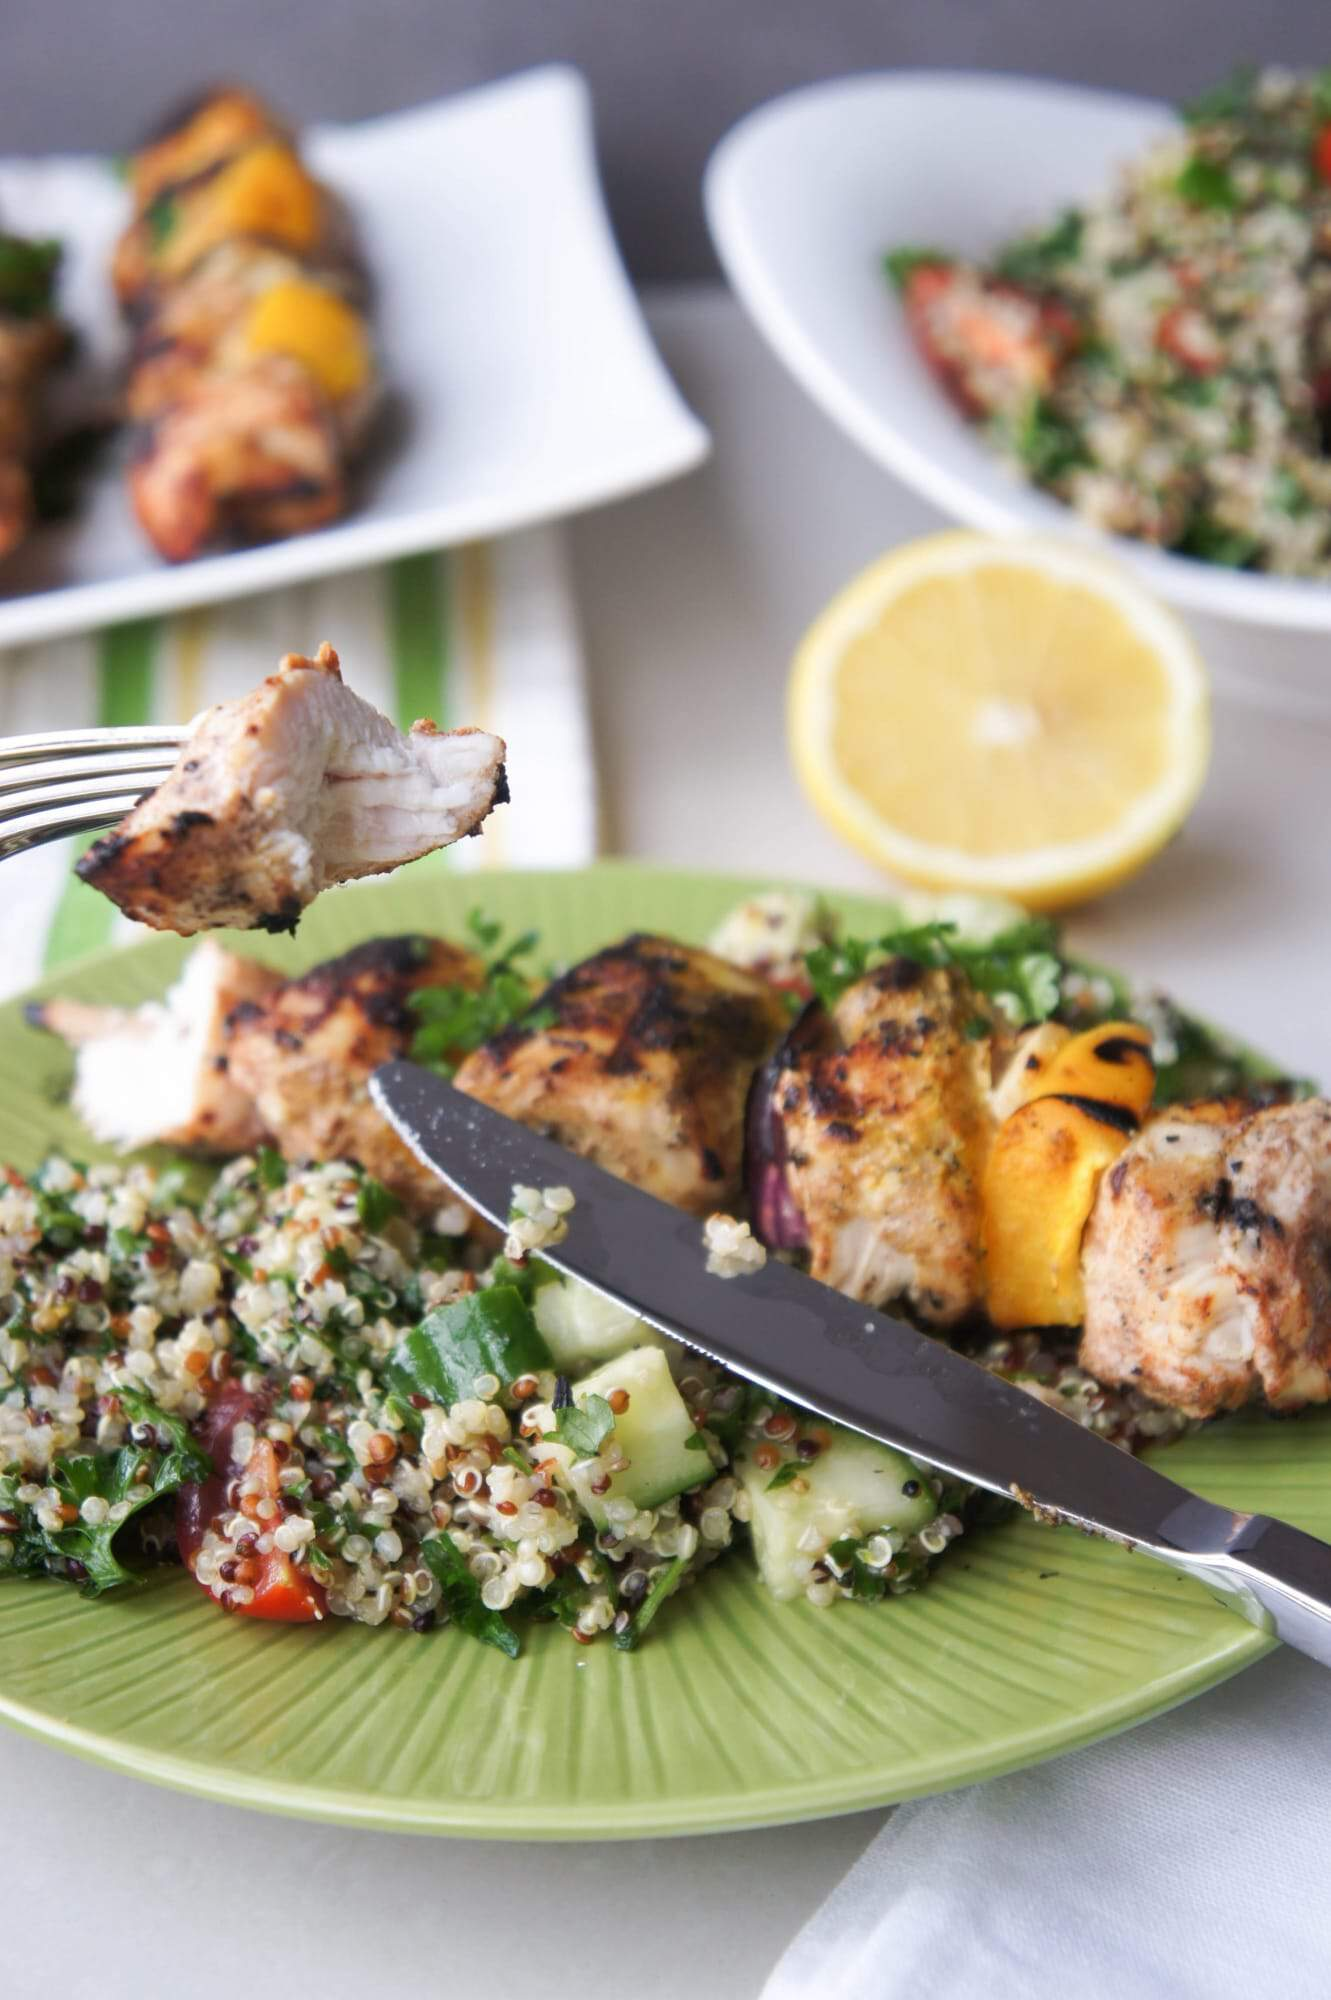 Marinated Chicken Skewers and Quinoa Tabbouleh